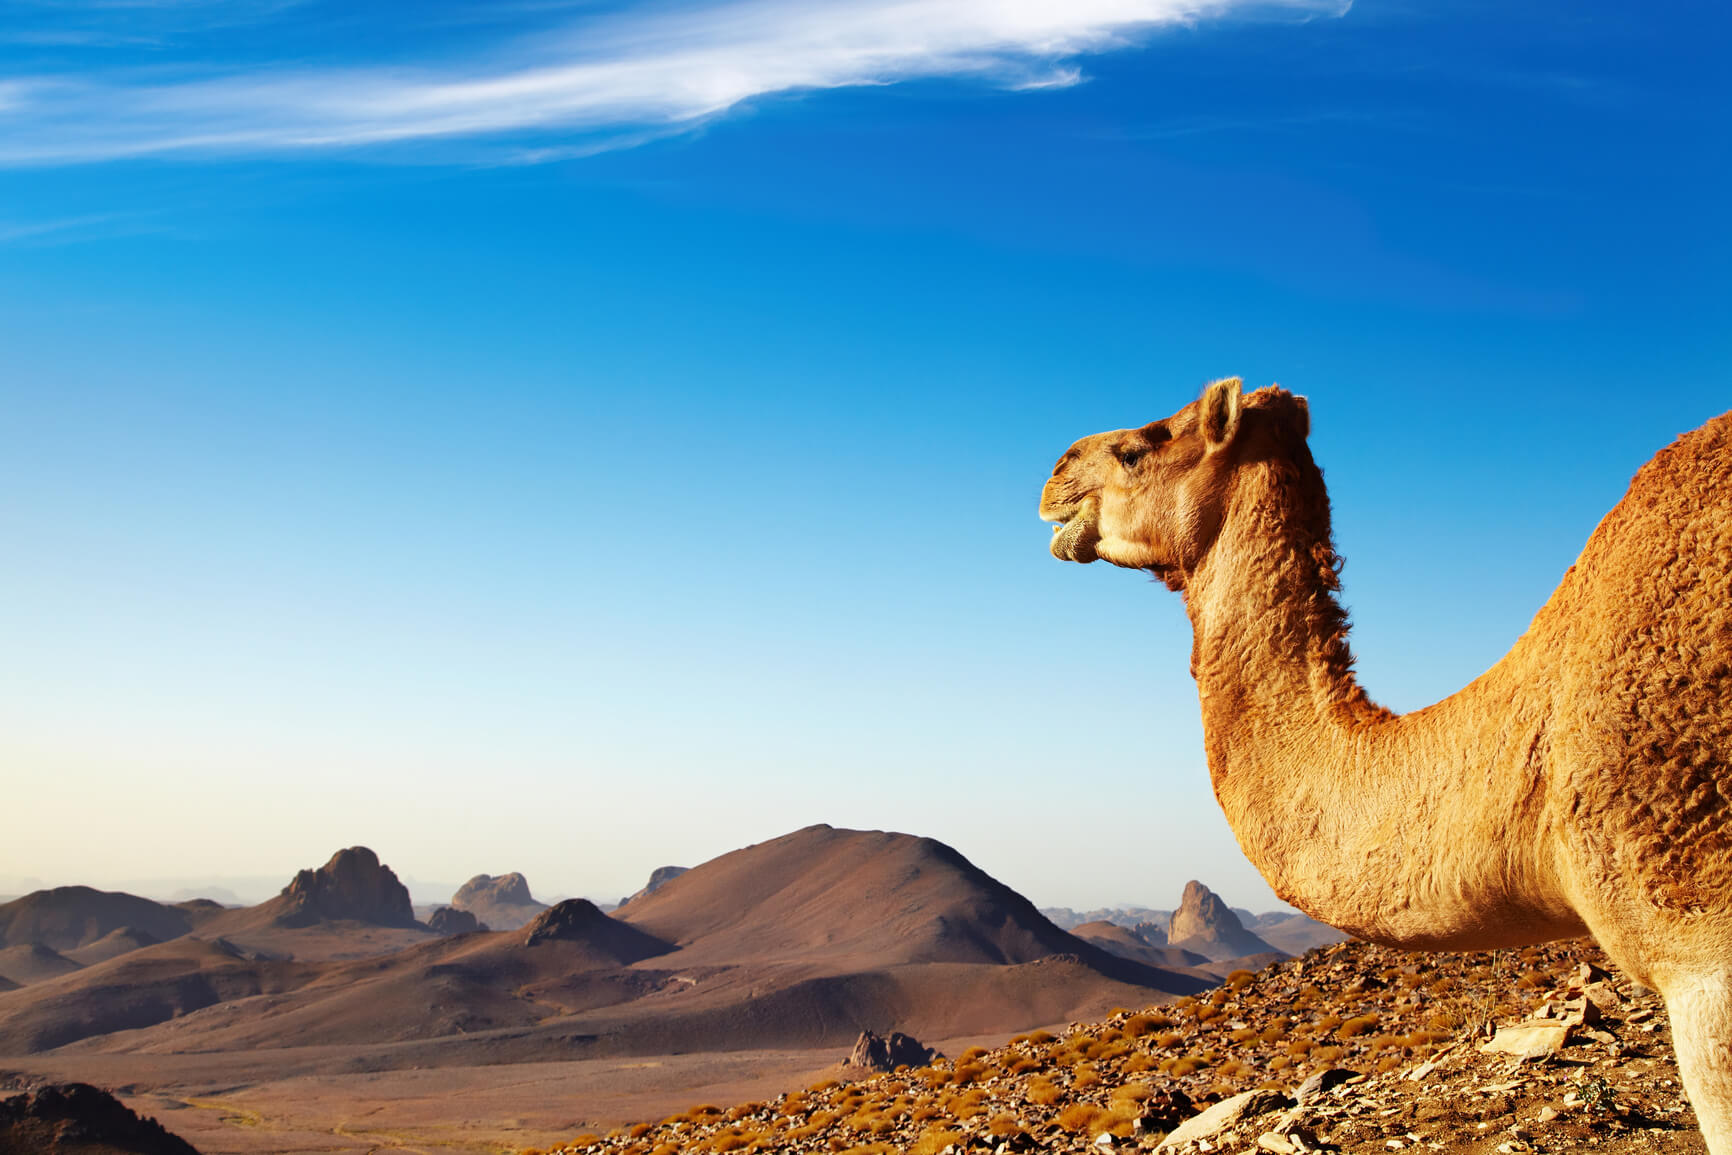 Washington DC to North African cities from only $577 roundtrip